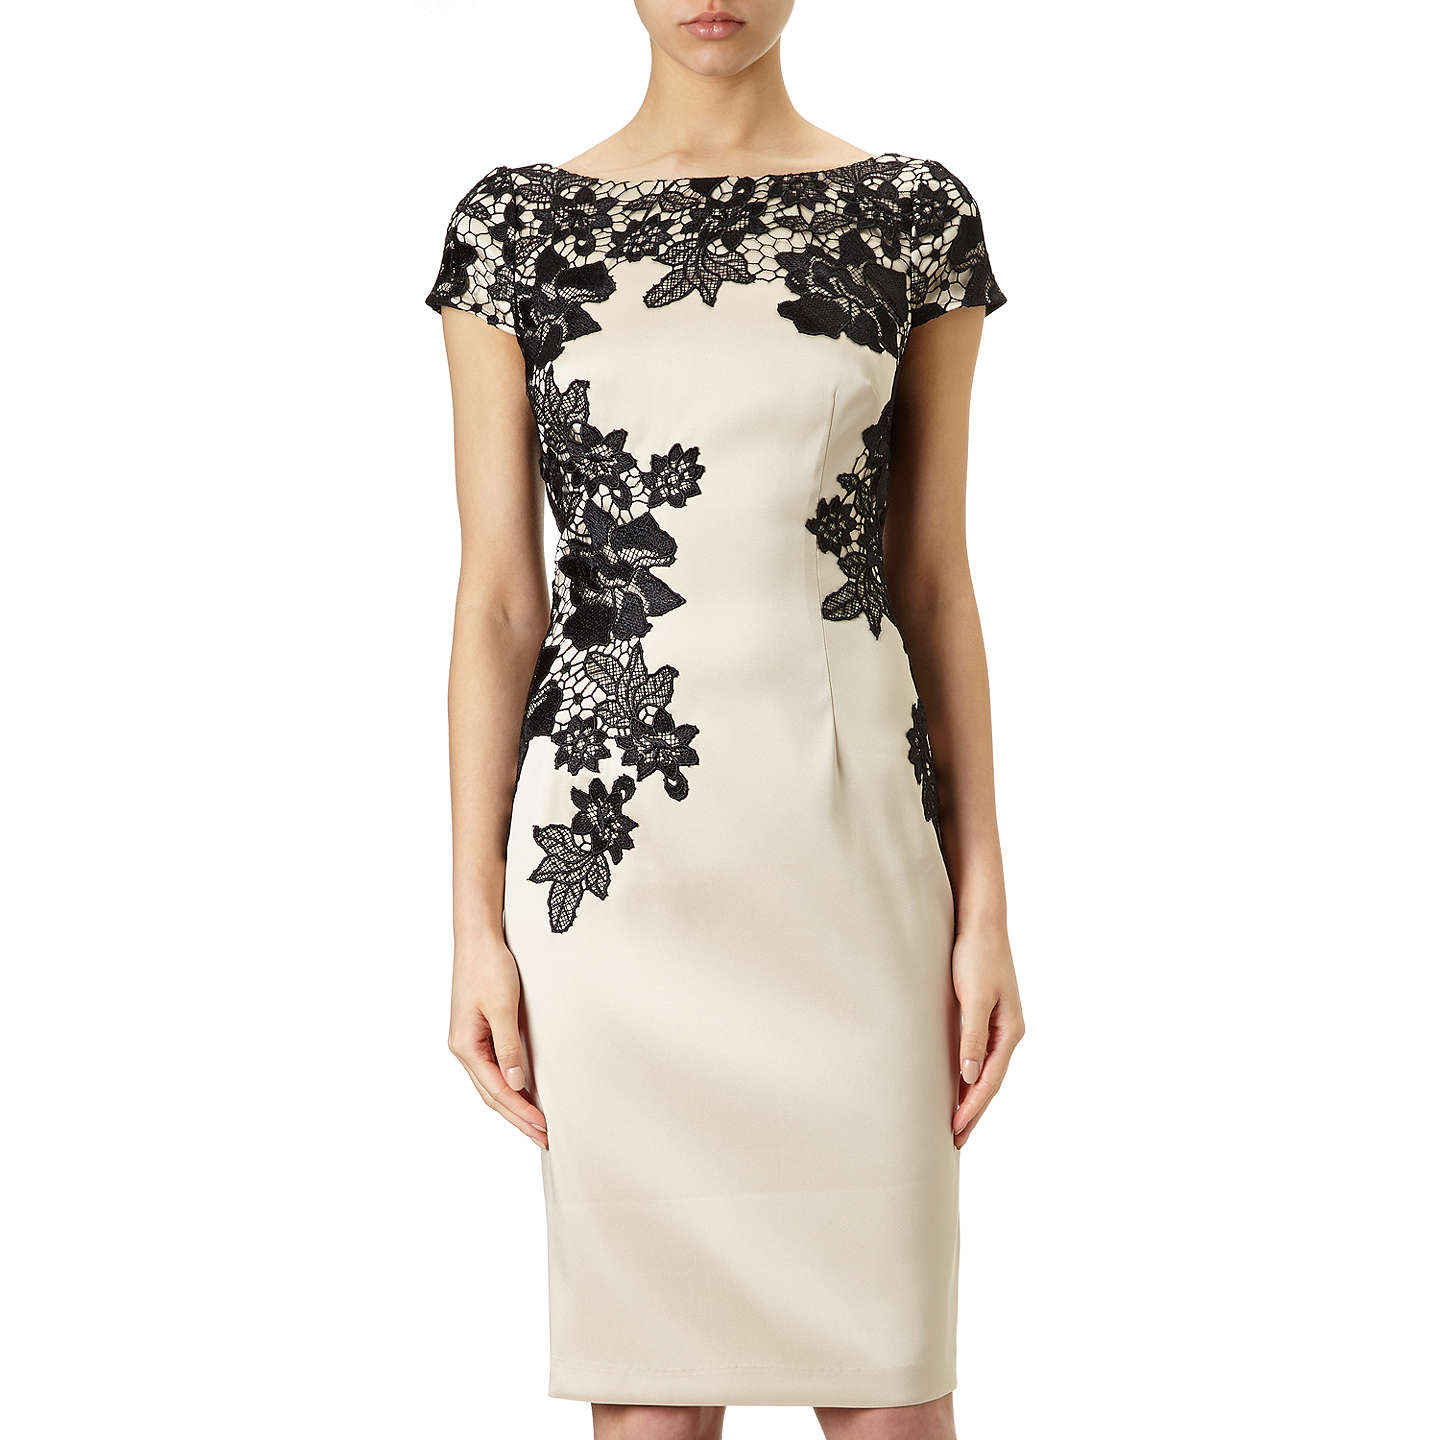 Adrianna Papell Cap Sleeve Cocktail Dress, Champagne/Black at John Lewis